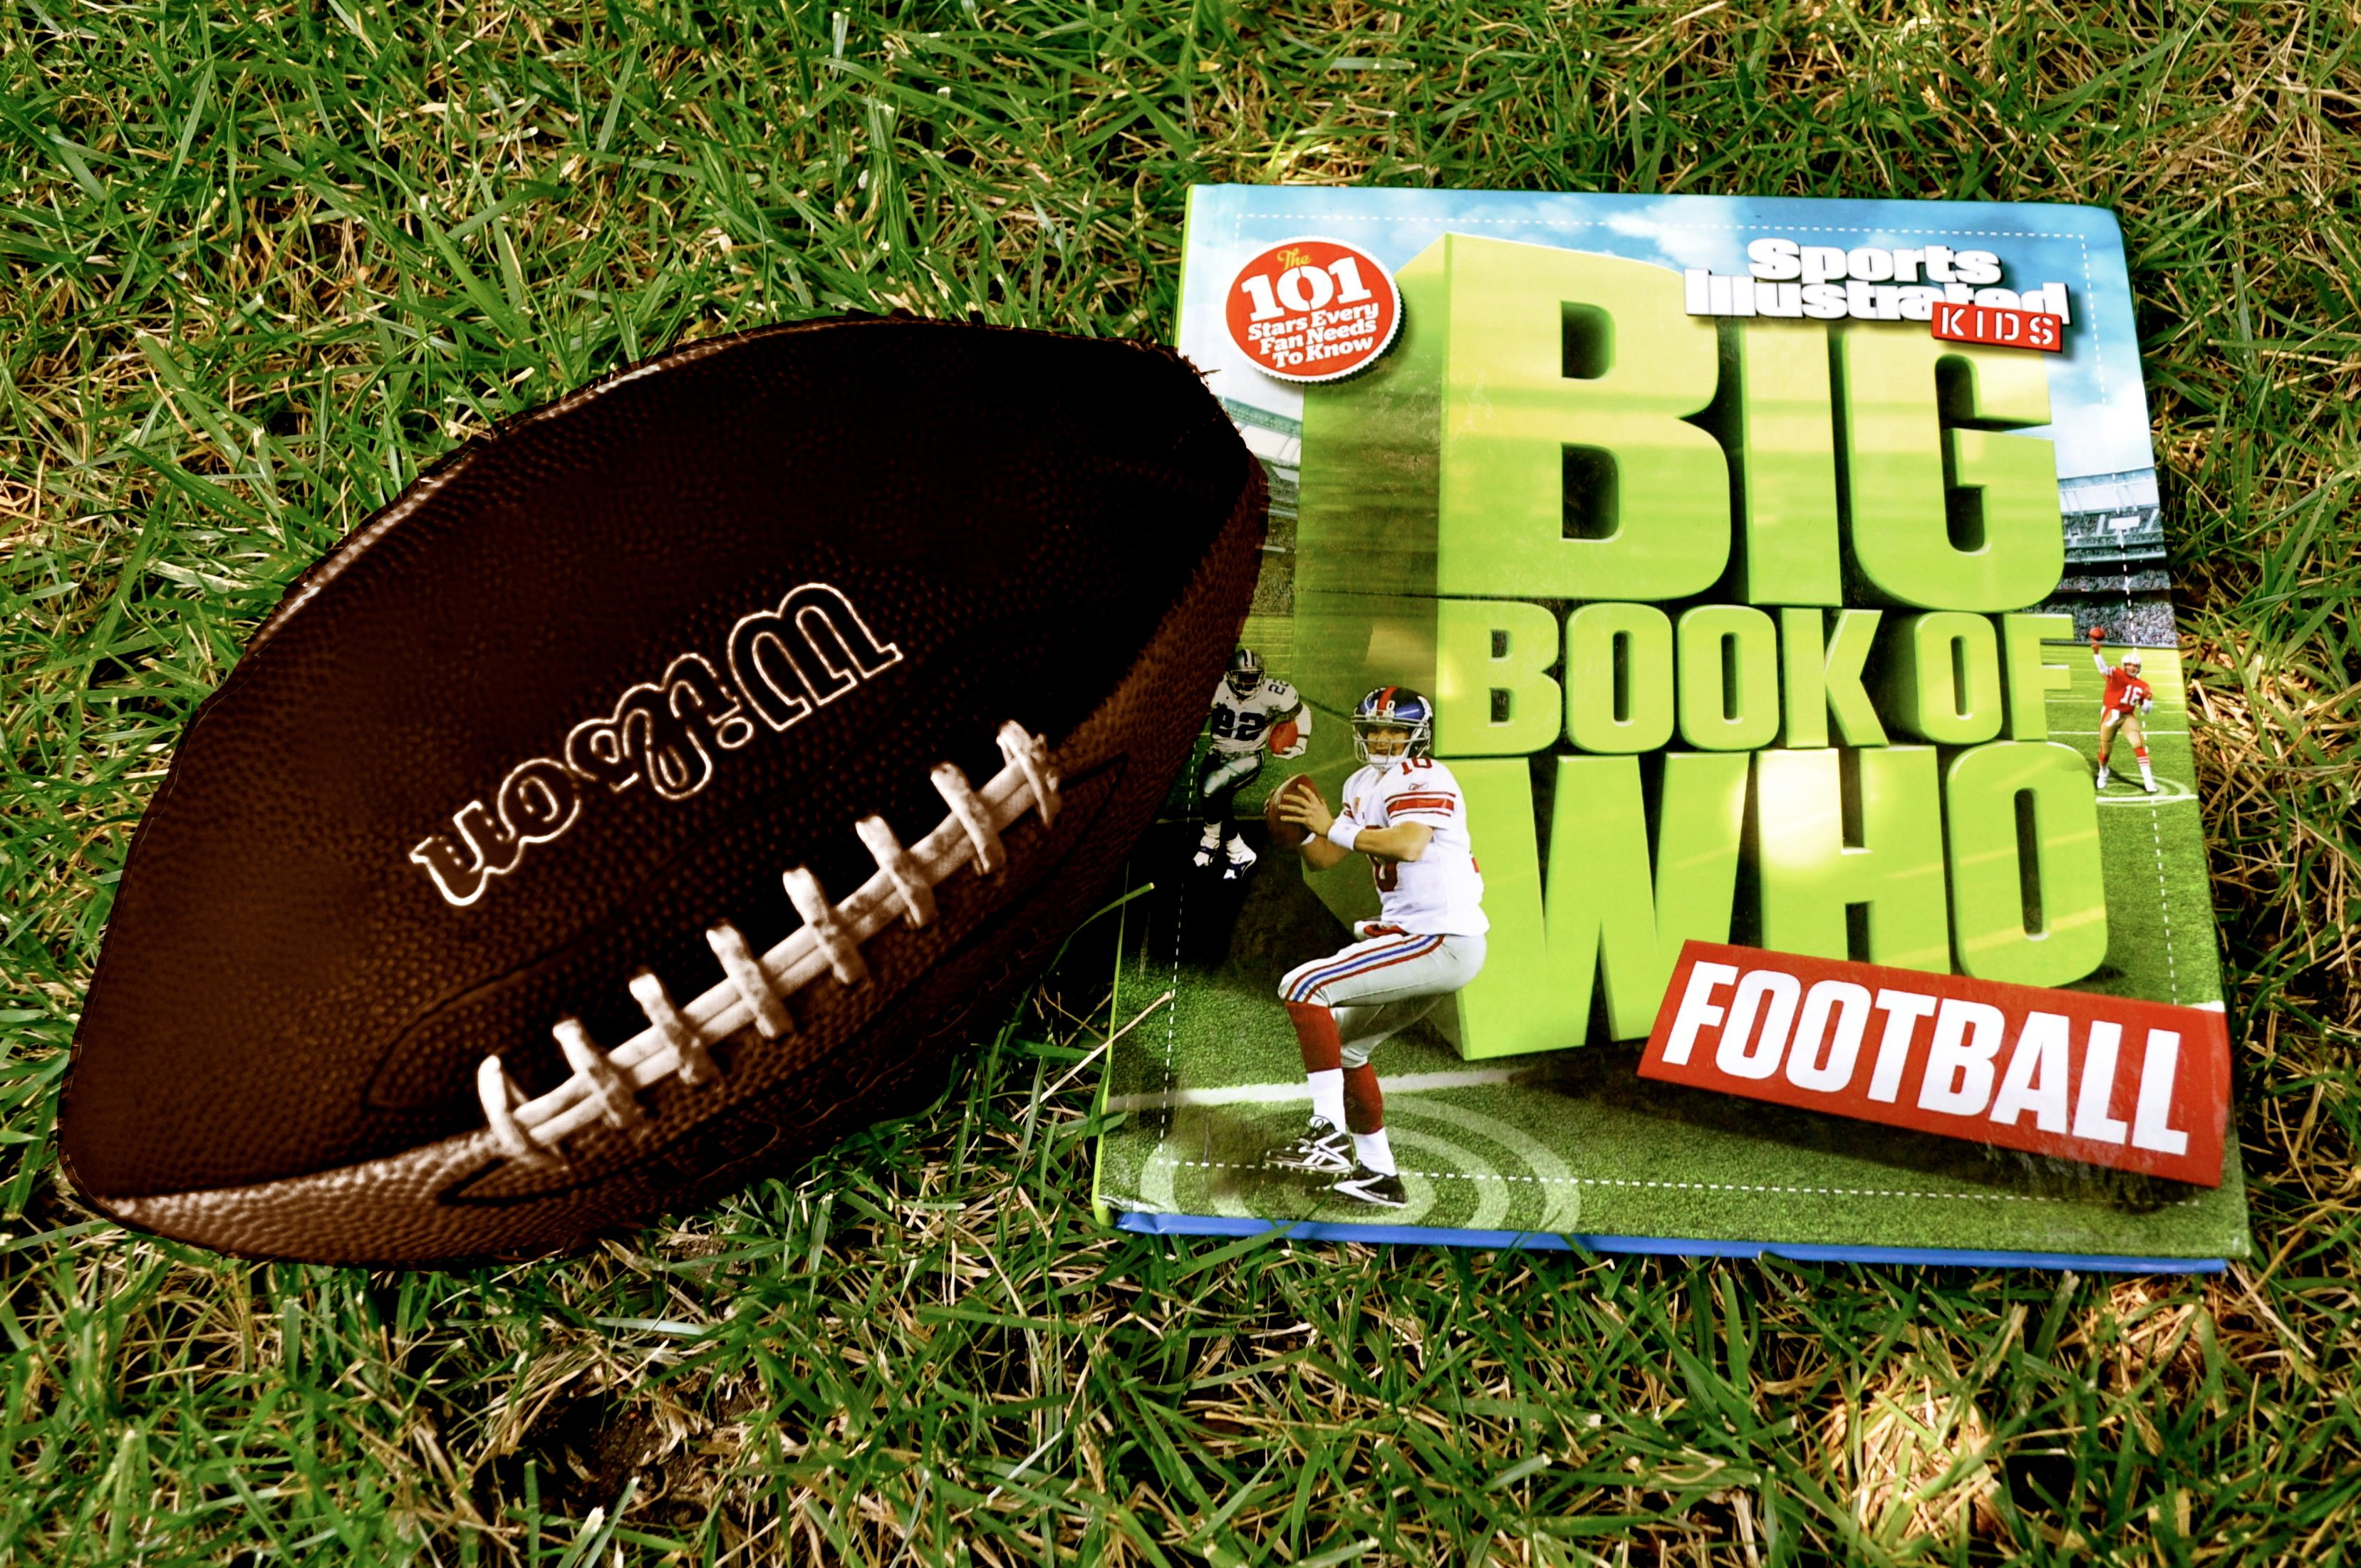 Sports Illustrated Kids – Big Book of Who – Football